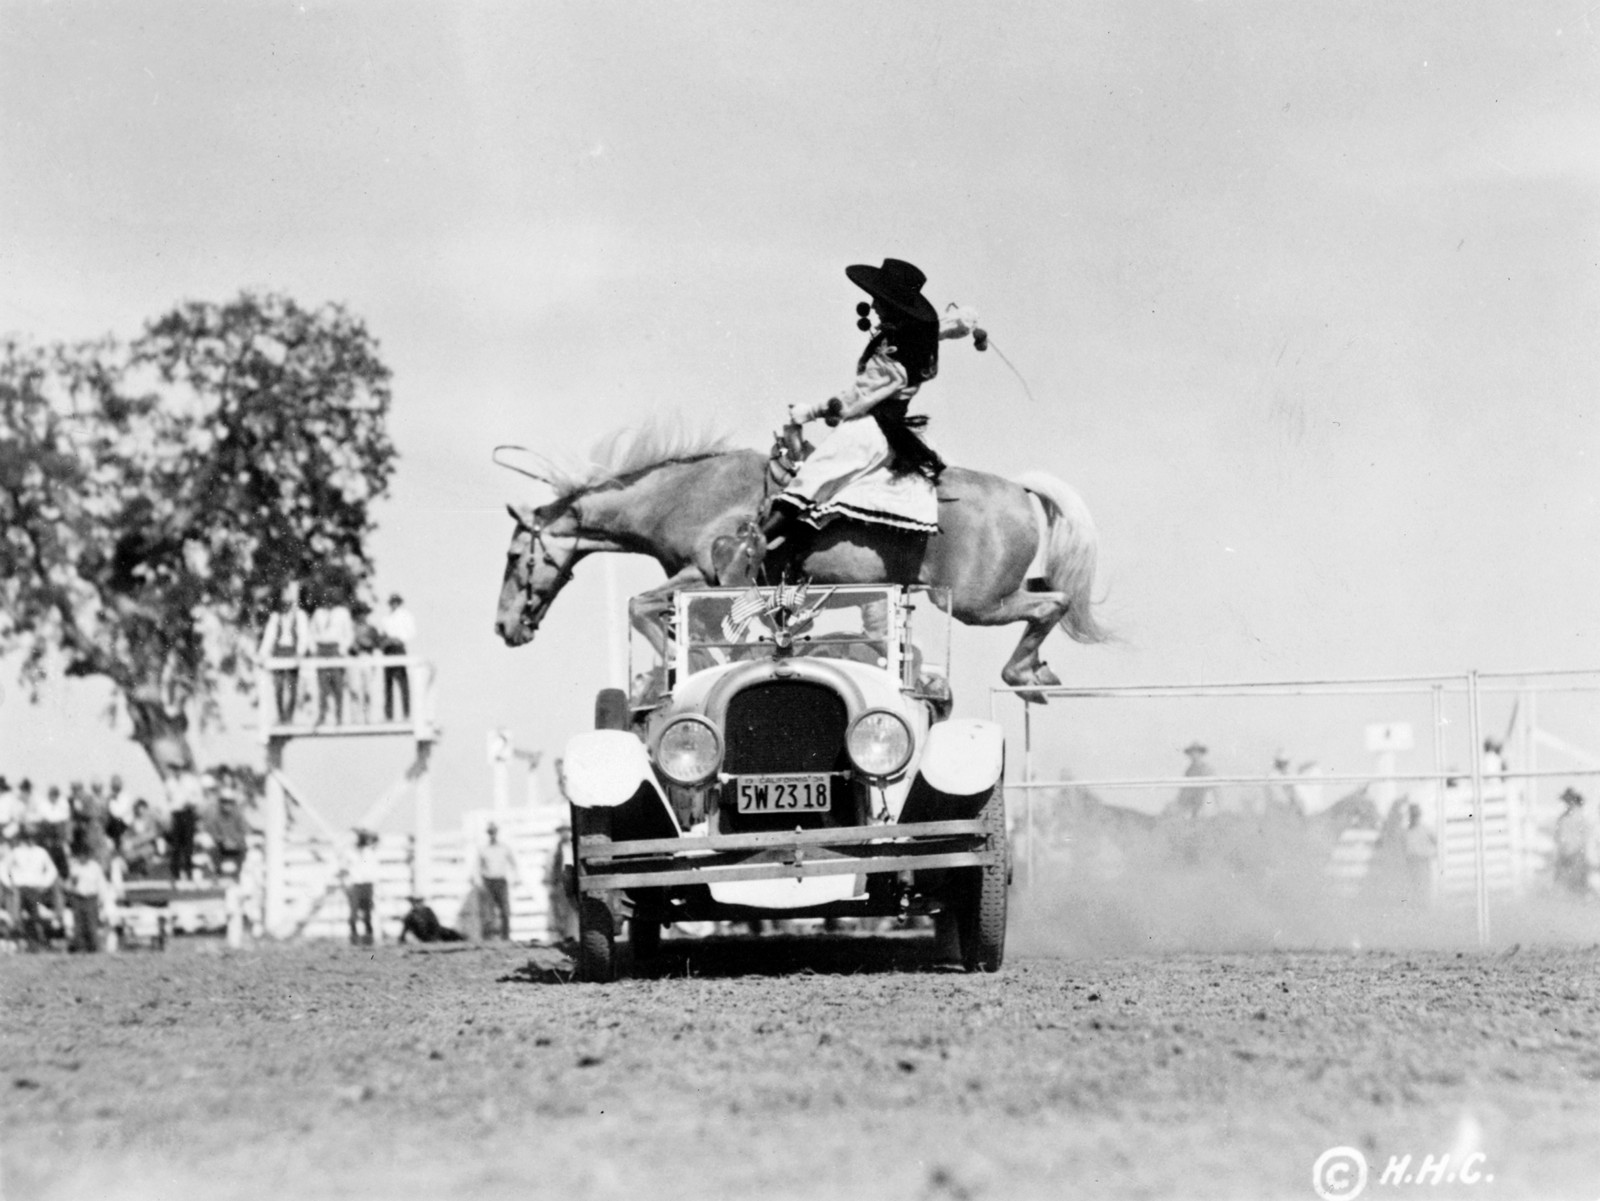 Photos: The Marlboro Man has nothing on these pioneering cowgirls